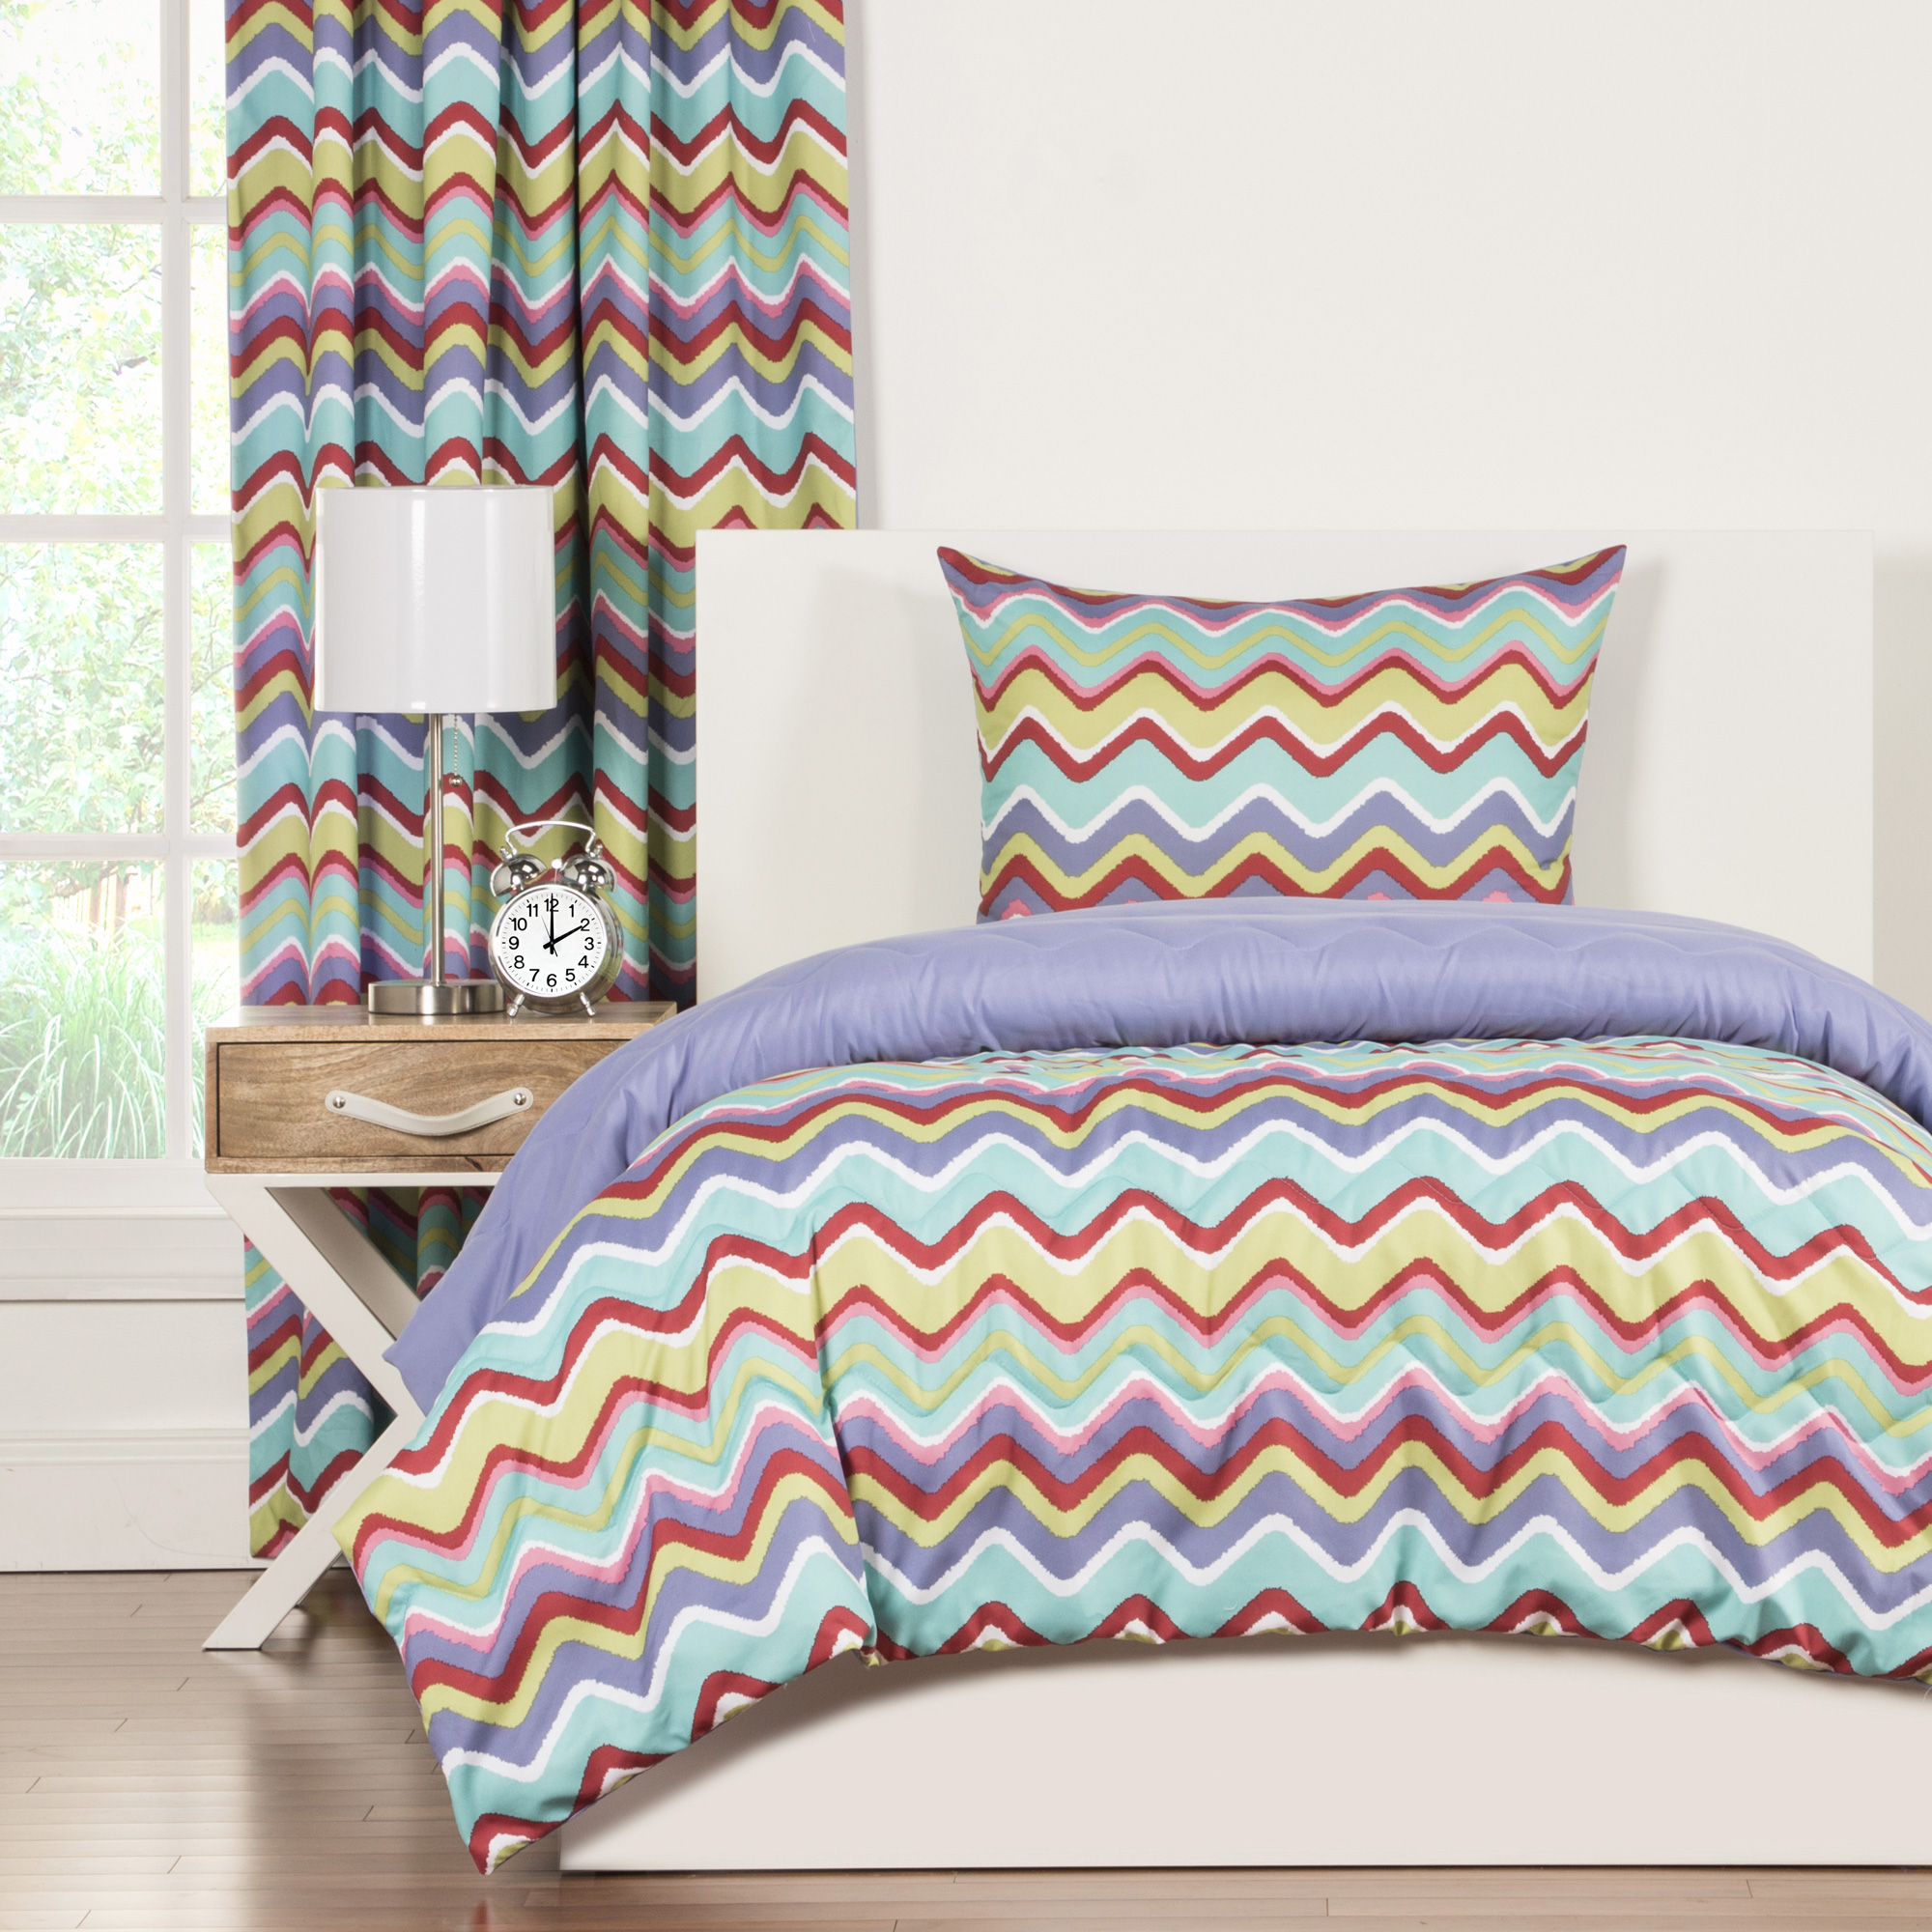 Sis Enterprises | Crayola Mixed Palette 3 Piece Full/Queen Comforter Set